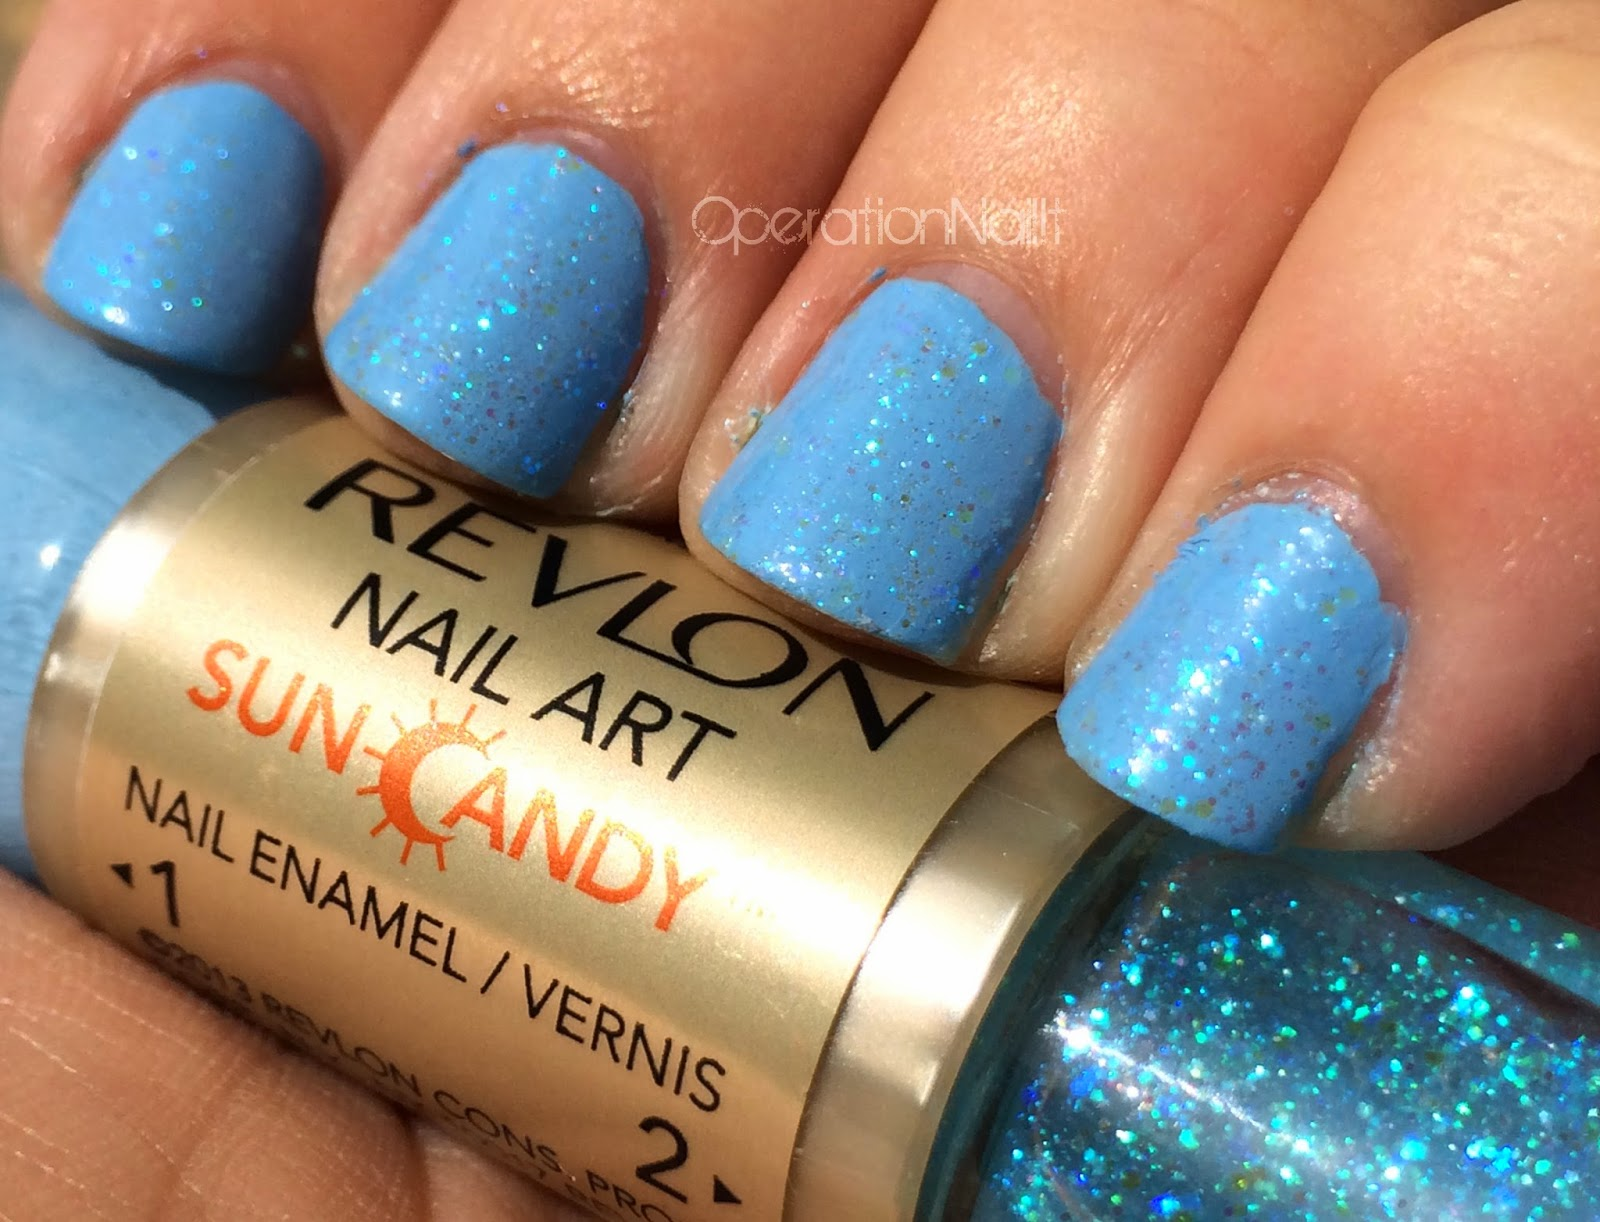 Operation: Nail It!: Revlon Sun Candy - Swatches + Review